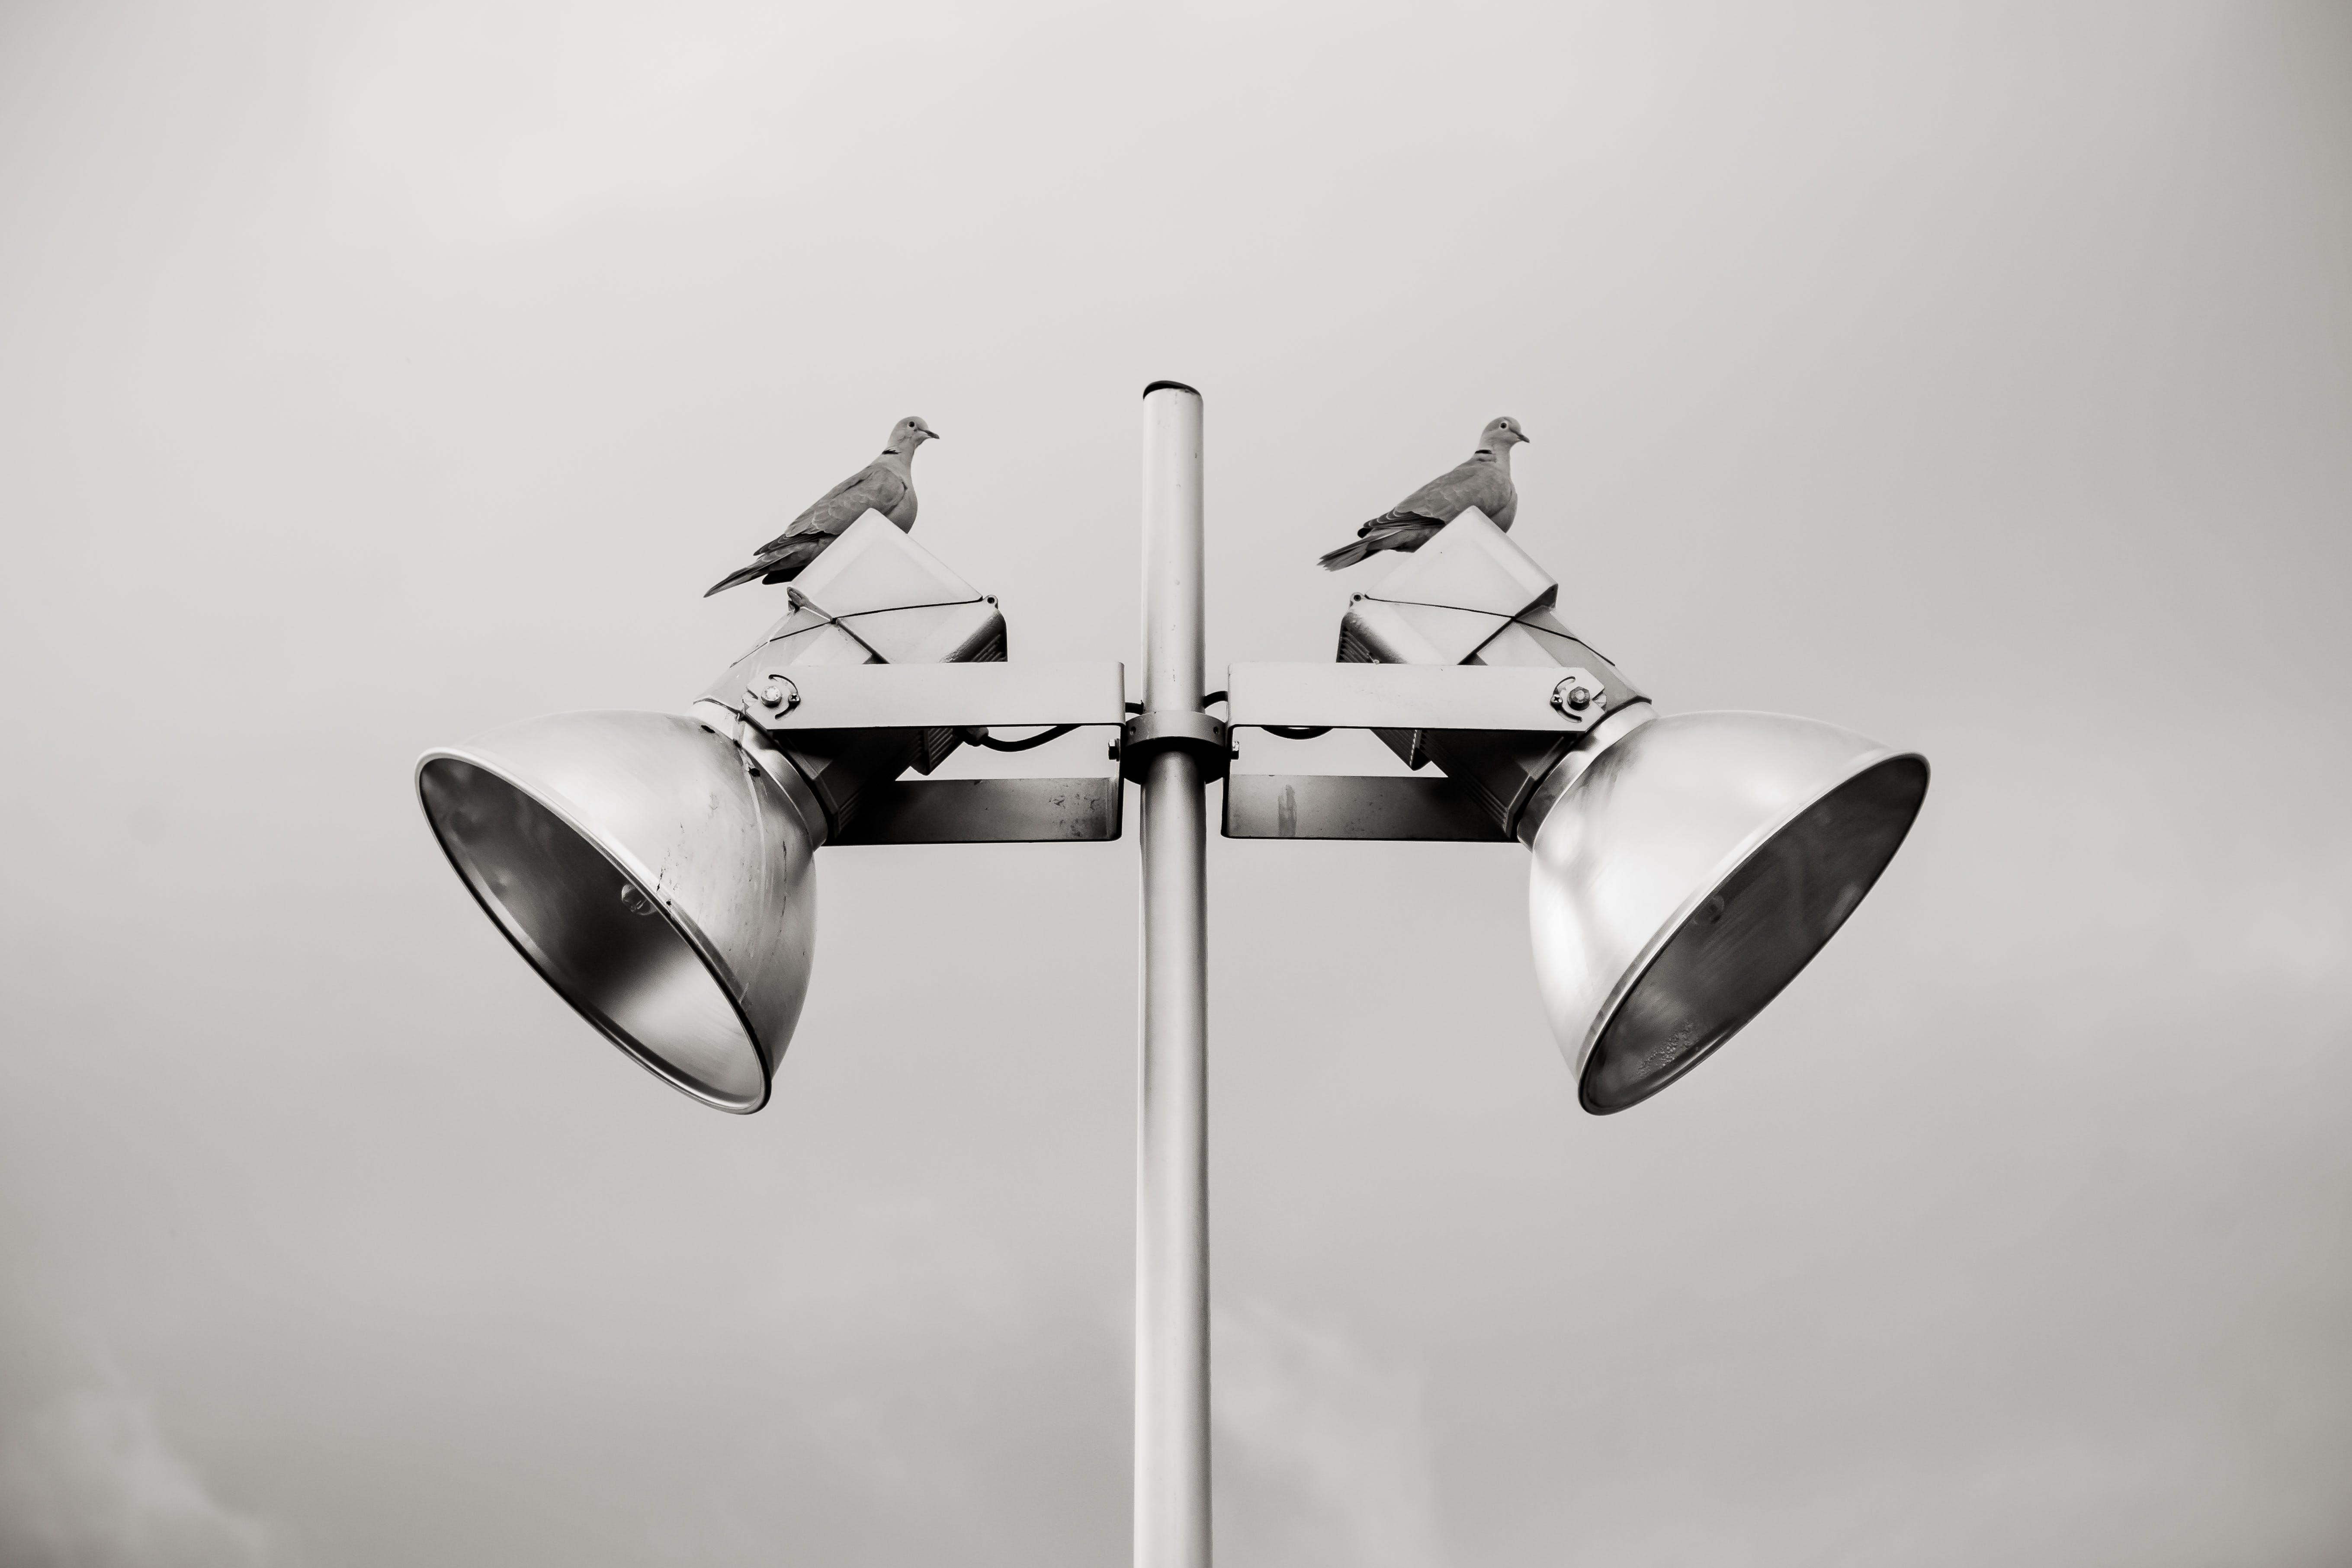 Two Pigeon Perched on White Track Light